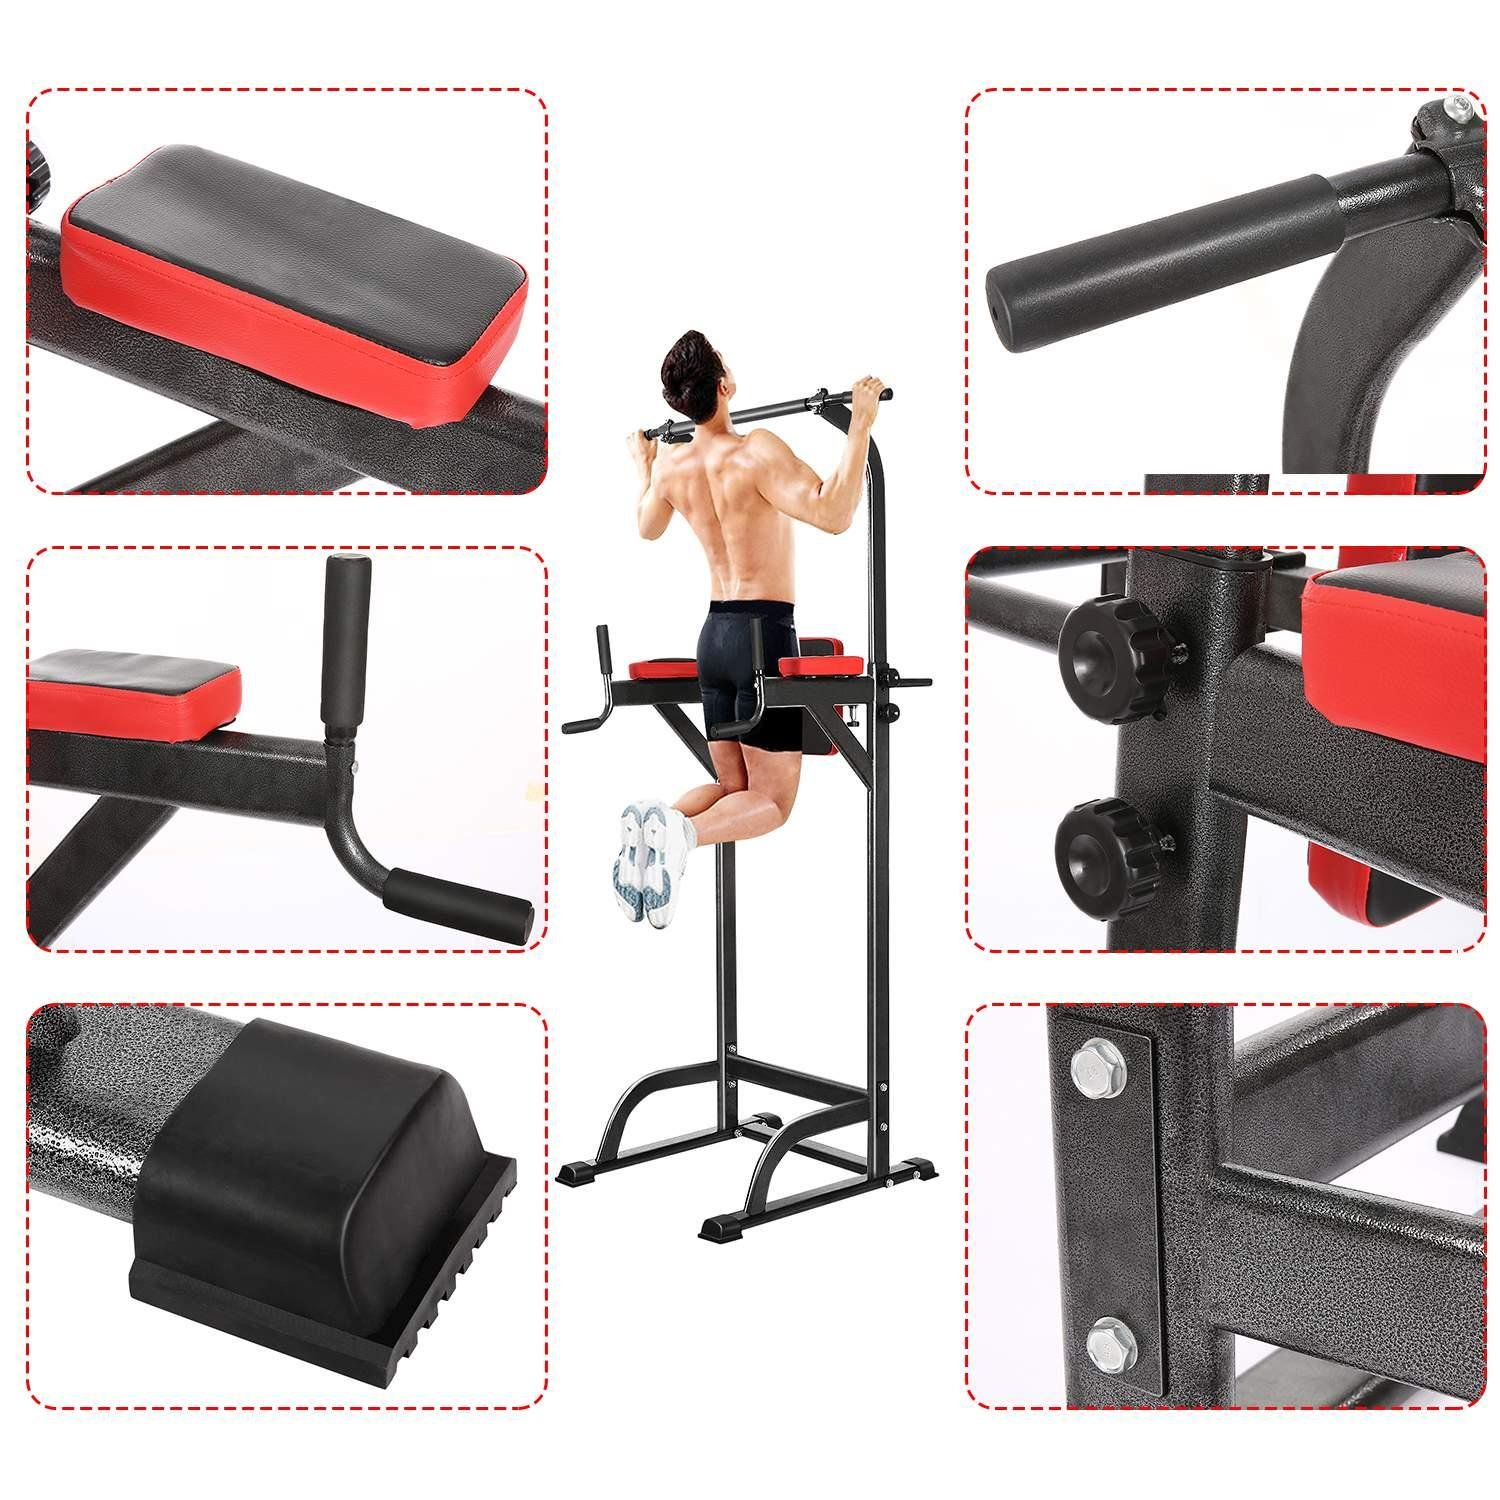 Adjustable Pull Up Chin Up Bar,Pull Up Stand Power Tower Strength Power Tower Fitness Workout Station by Rapesee (Image #7)